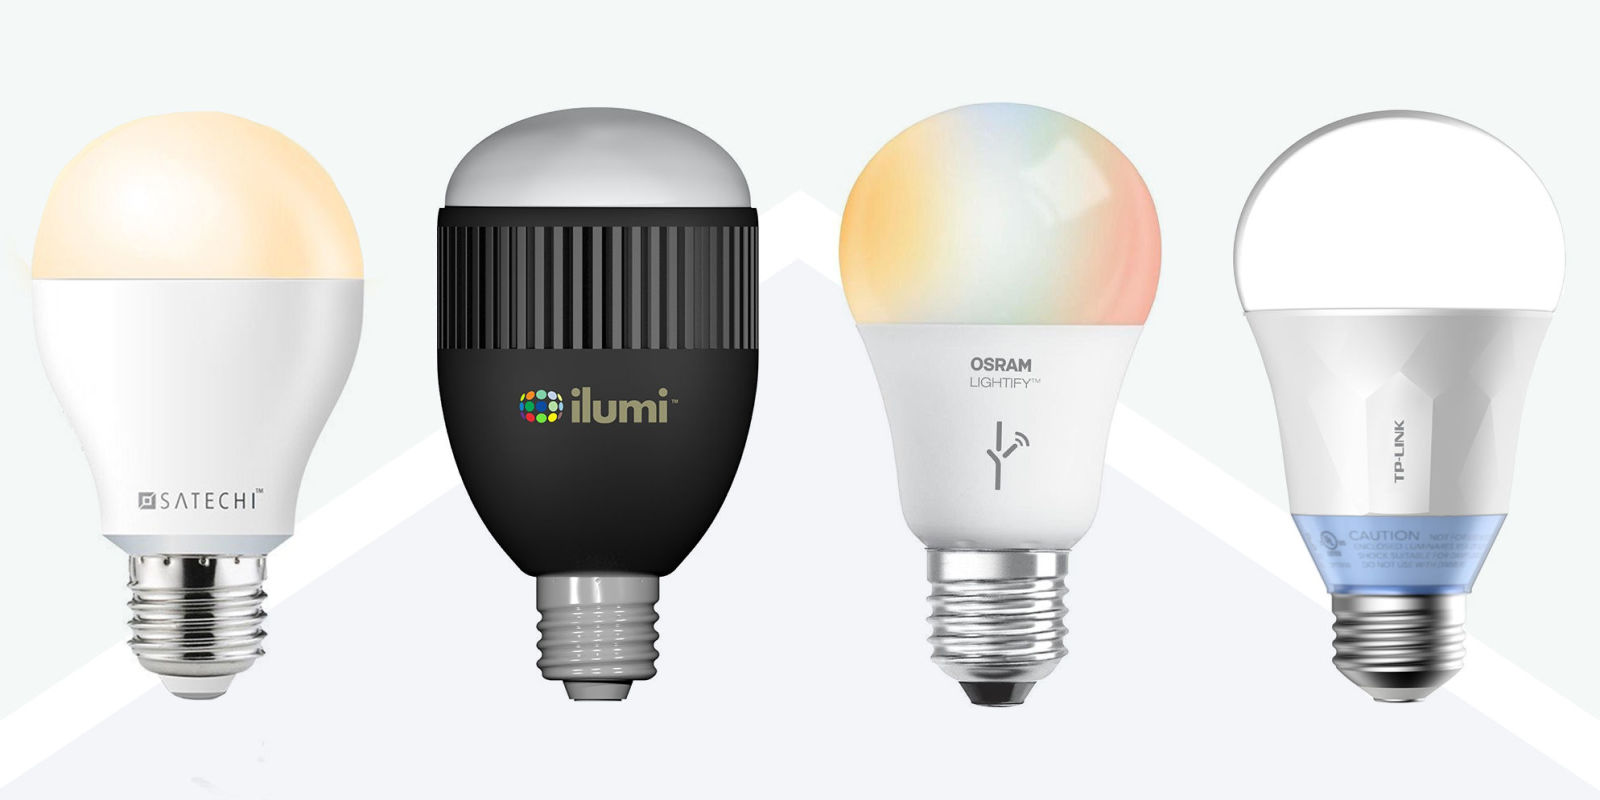 12 best smart light bulbs in 2018 top bluetooth and led light bulbs Smart light bulbs